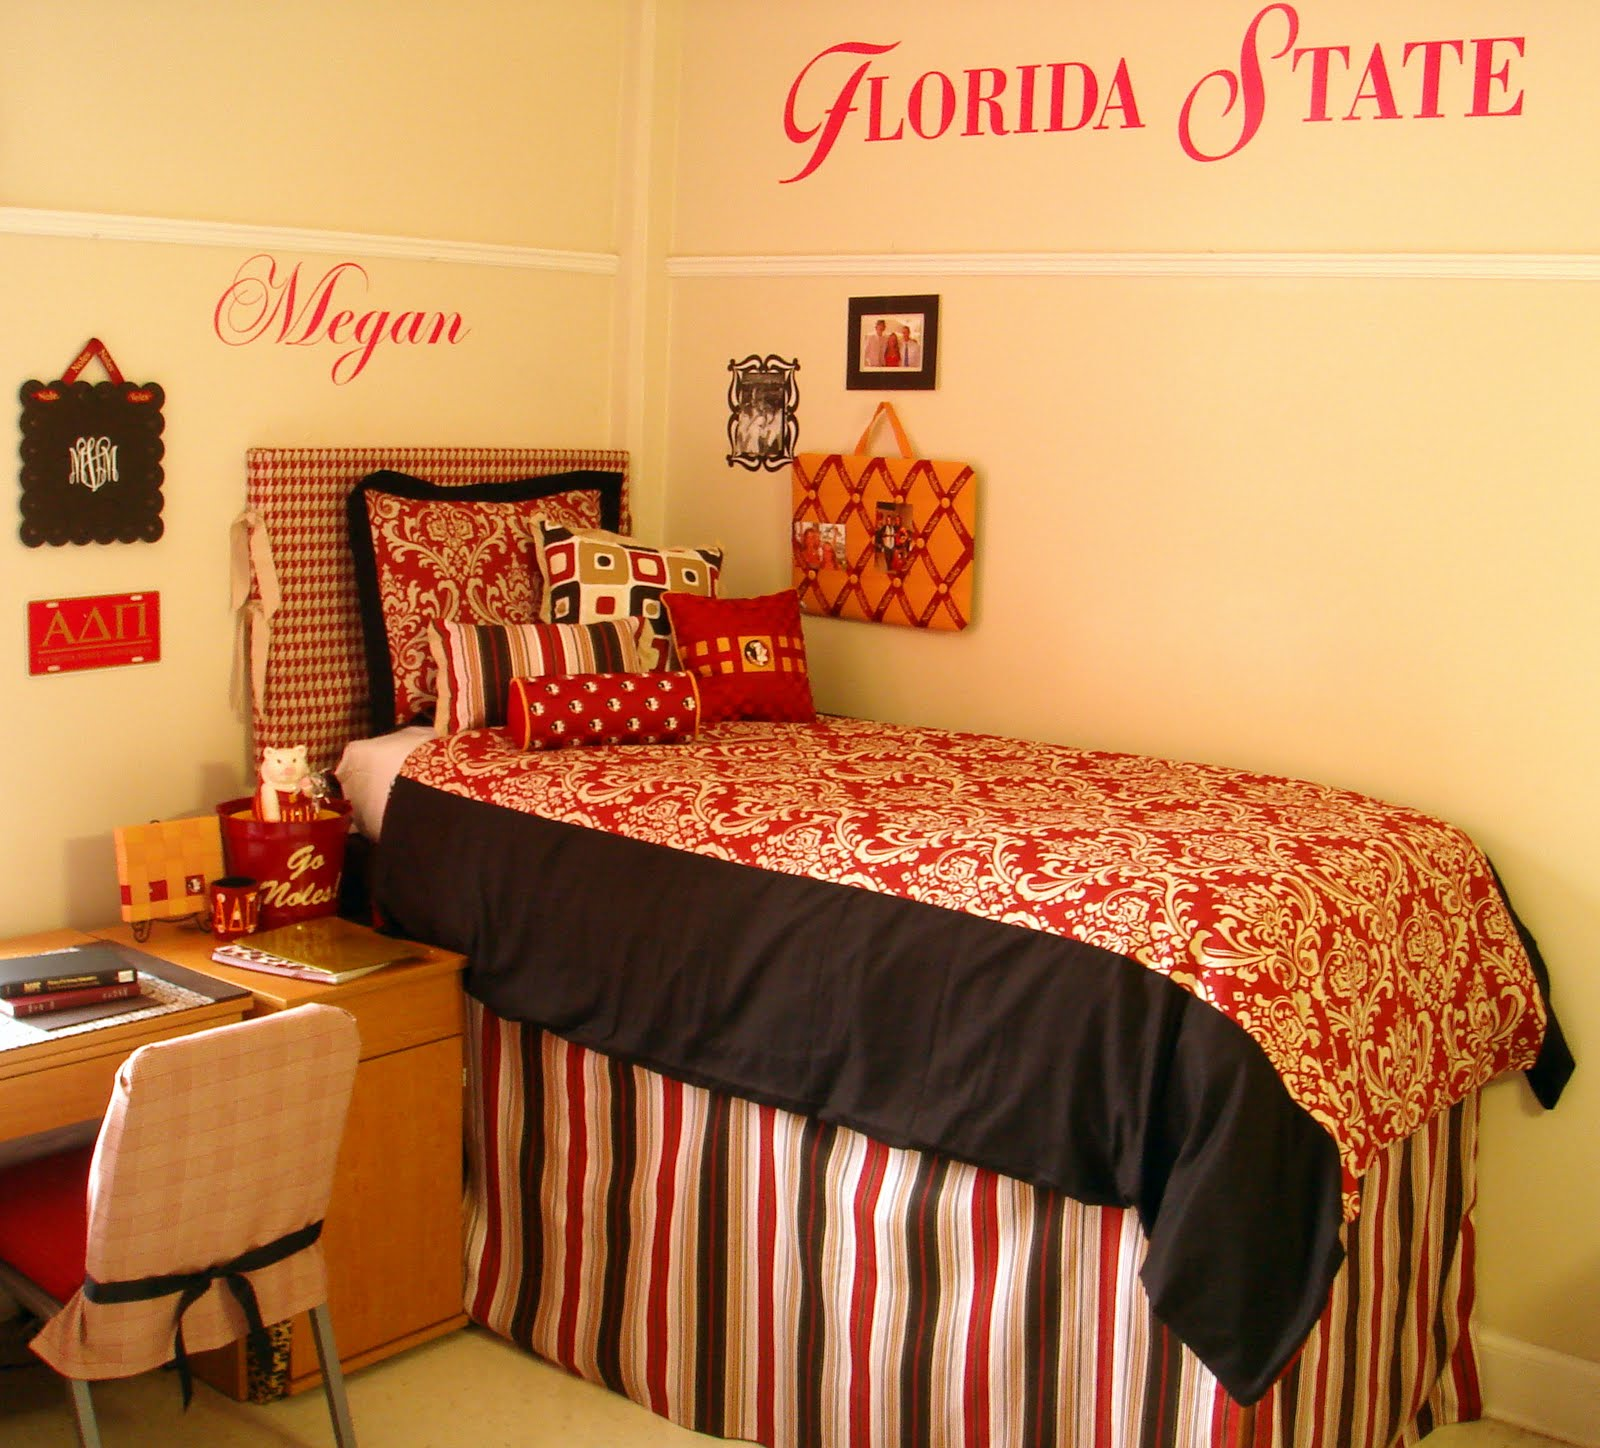 Cute dorm decorating ideas dream house experience for Cute dorm bathroom ideas